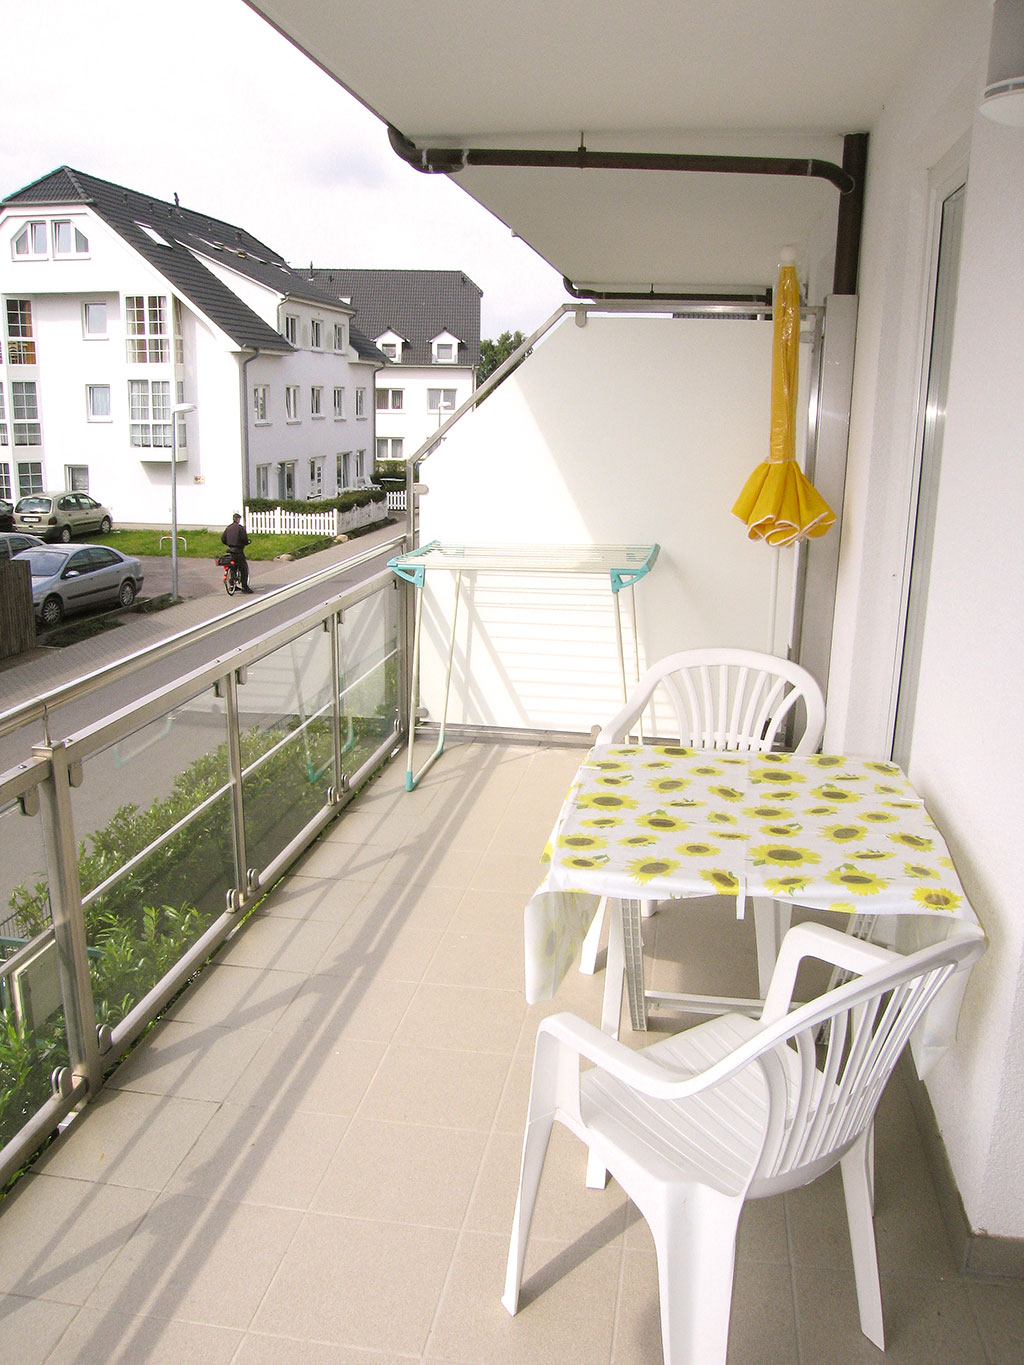 Holiday apartment 2-4 Pers. (146928), Baabe, Rügen, Mecklenburg-Western Pomerania, Germany, picture 7